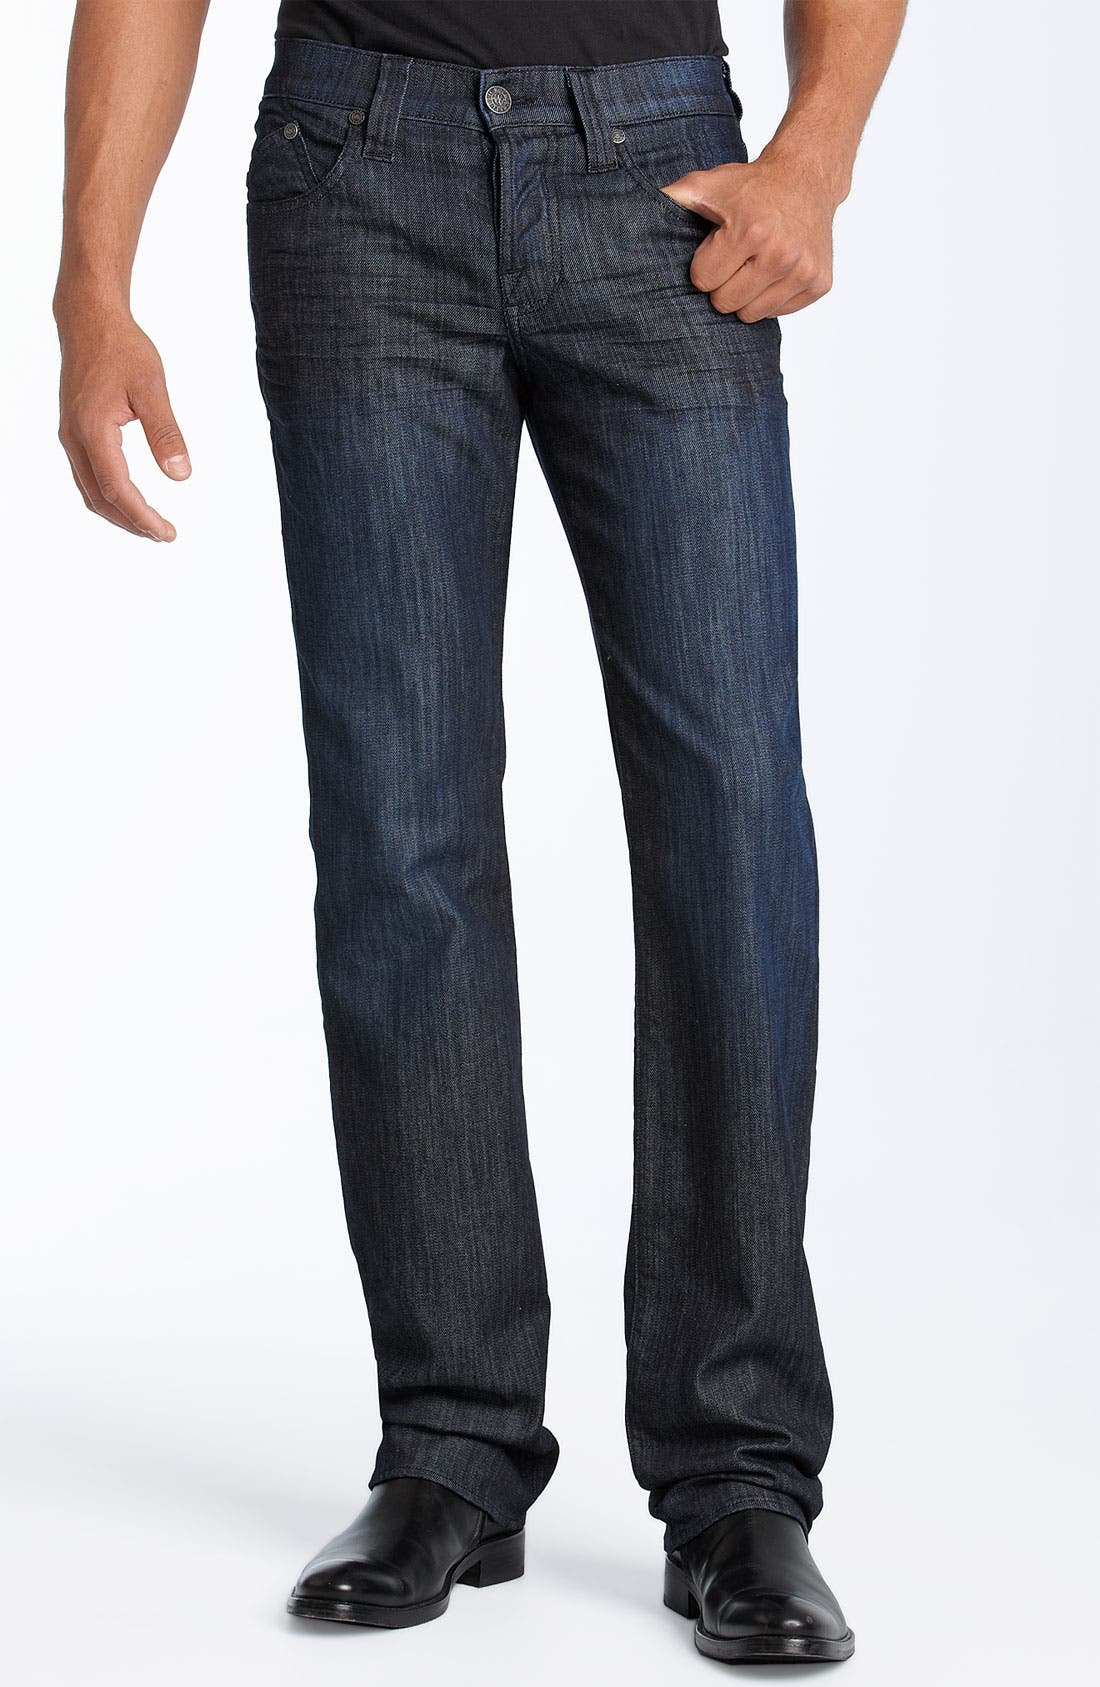 ROCK & REPUBLIC,                             'Neil' Relaxed Straight Leg Jeans,                             Alternate thumbnail 2, color,                             490